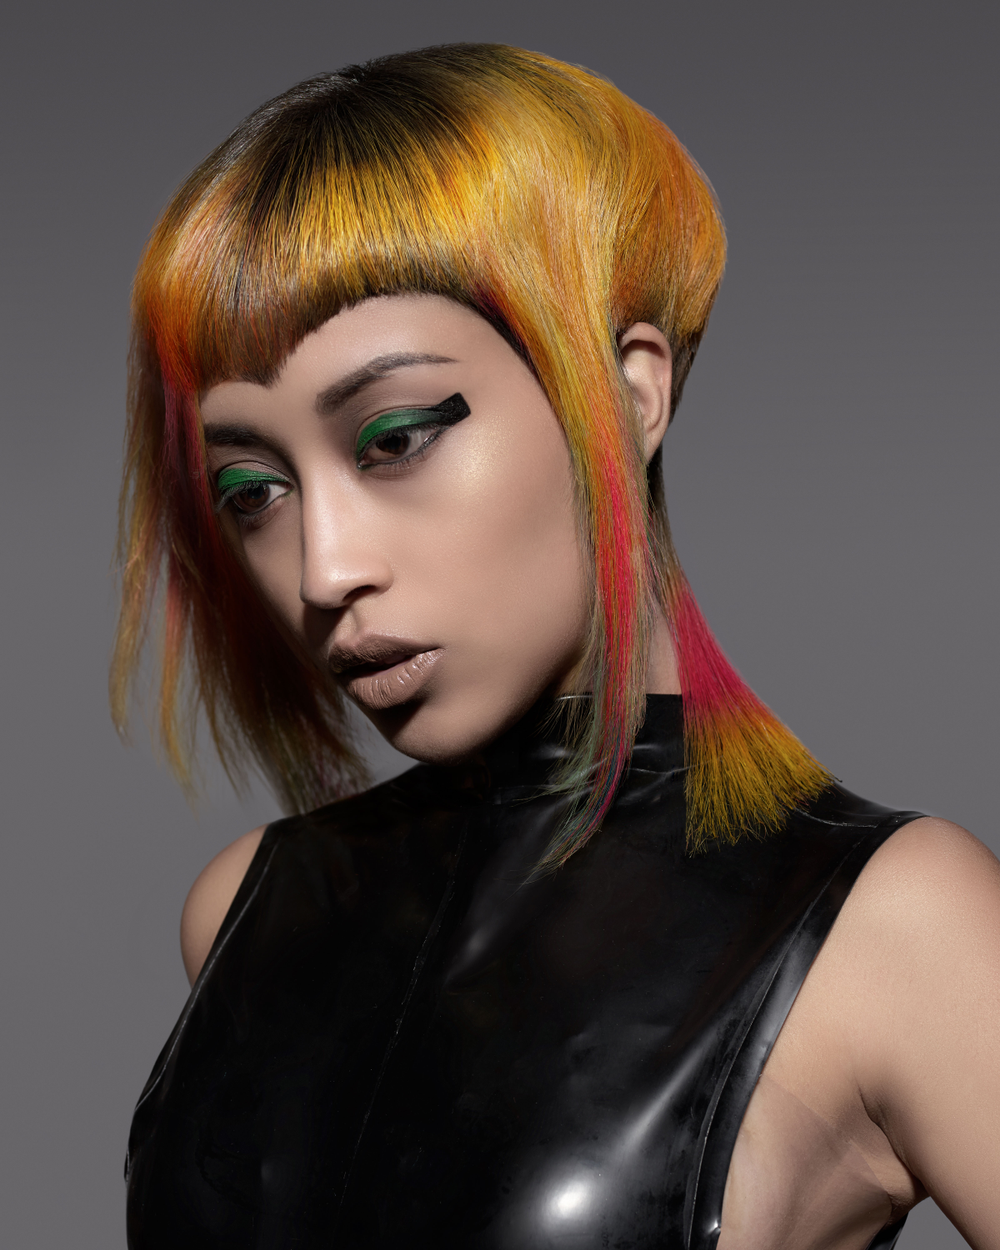 Goldwell ColorZoom Gold finalist, New Talent Colorist, Linda Cabrera of Hair By Scott & Co. (Delray Beach, FL)